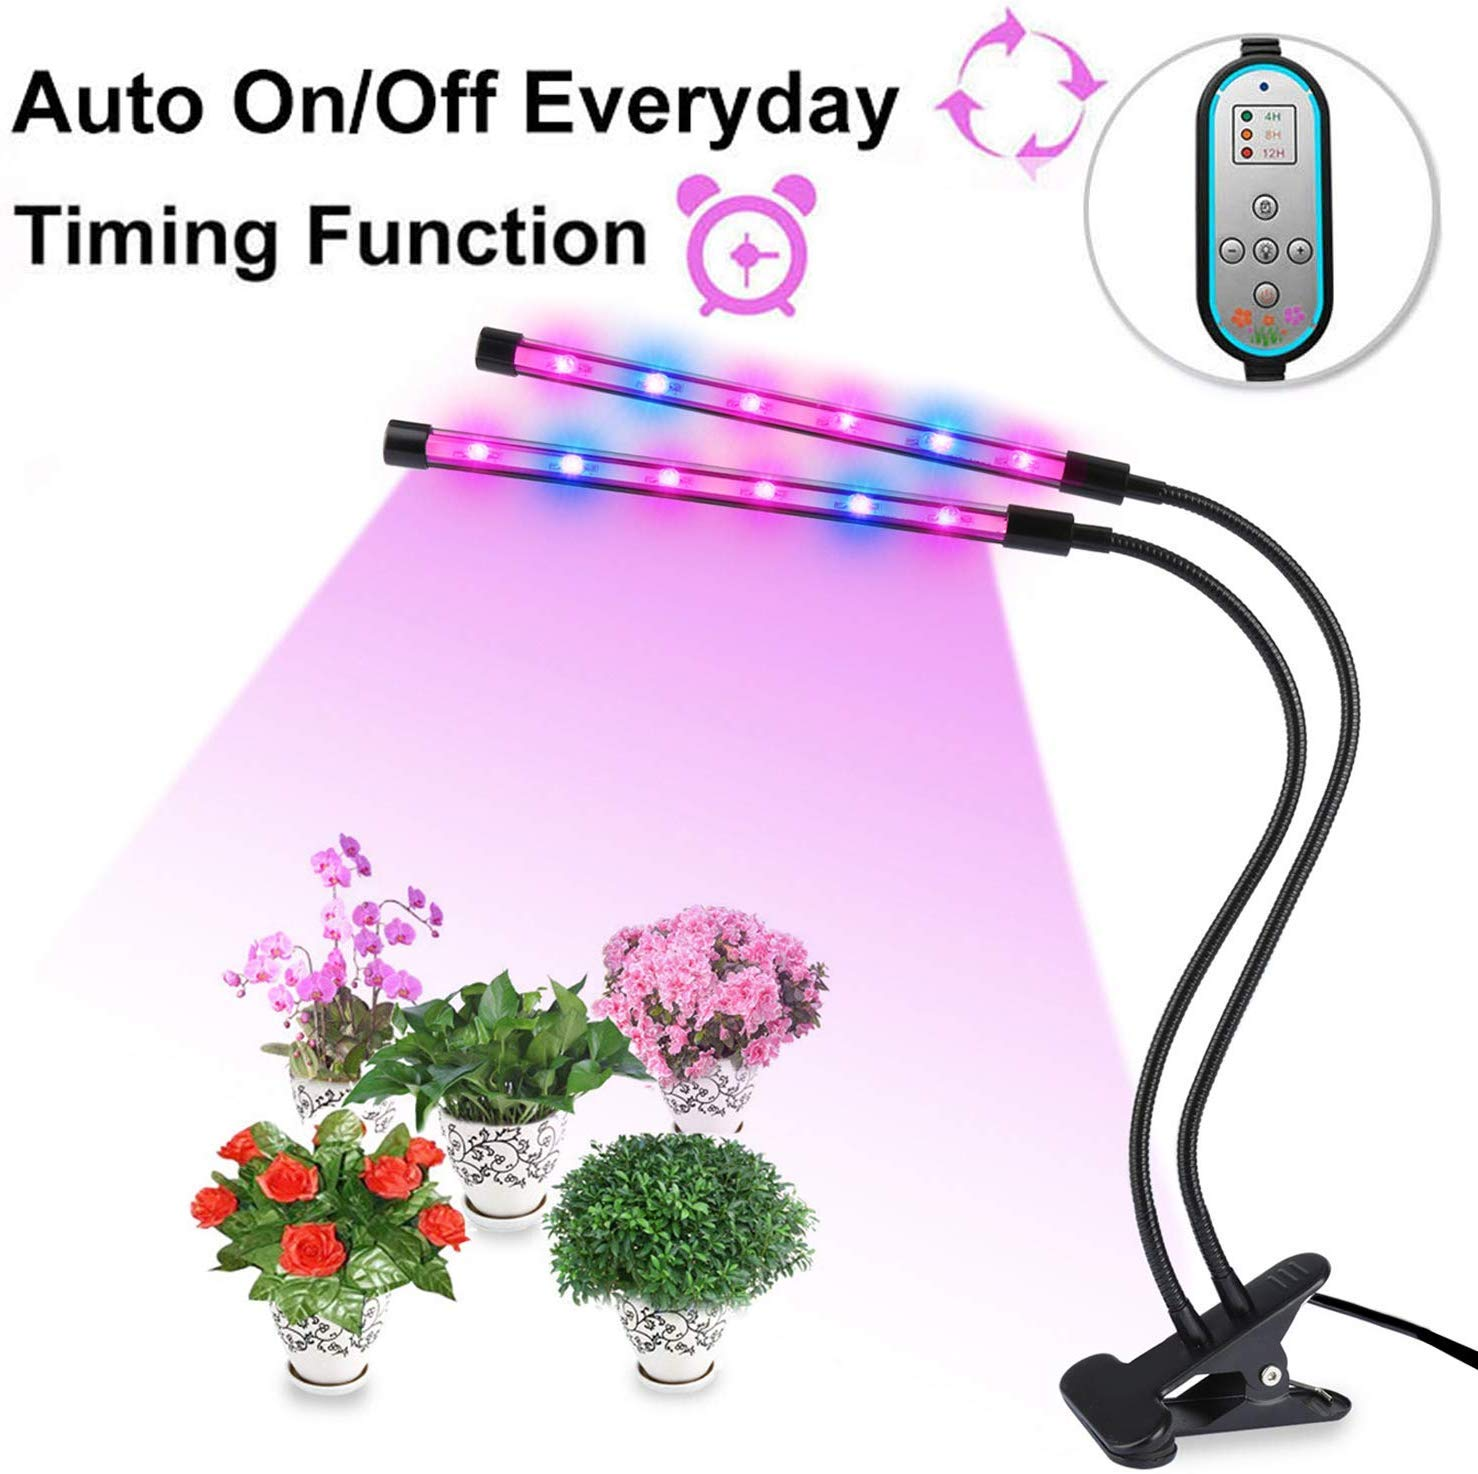 Plant Lamp Dual Head Grow Light Timing 24W 360 Gooseneck with 8 Dimmable Levels, 4 8 12 H Timer for Indoor Plants Hydroponics Greenhouse Gardening by Domserv 2018 Upgraded